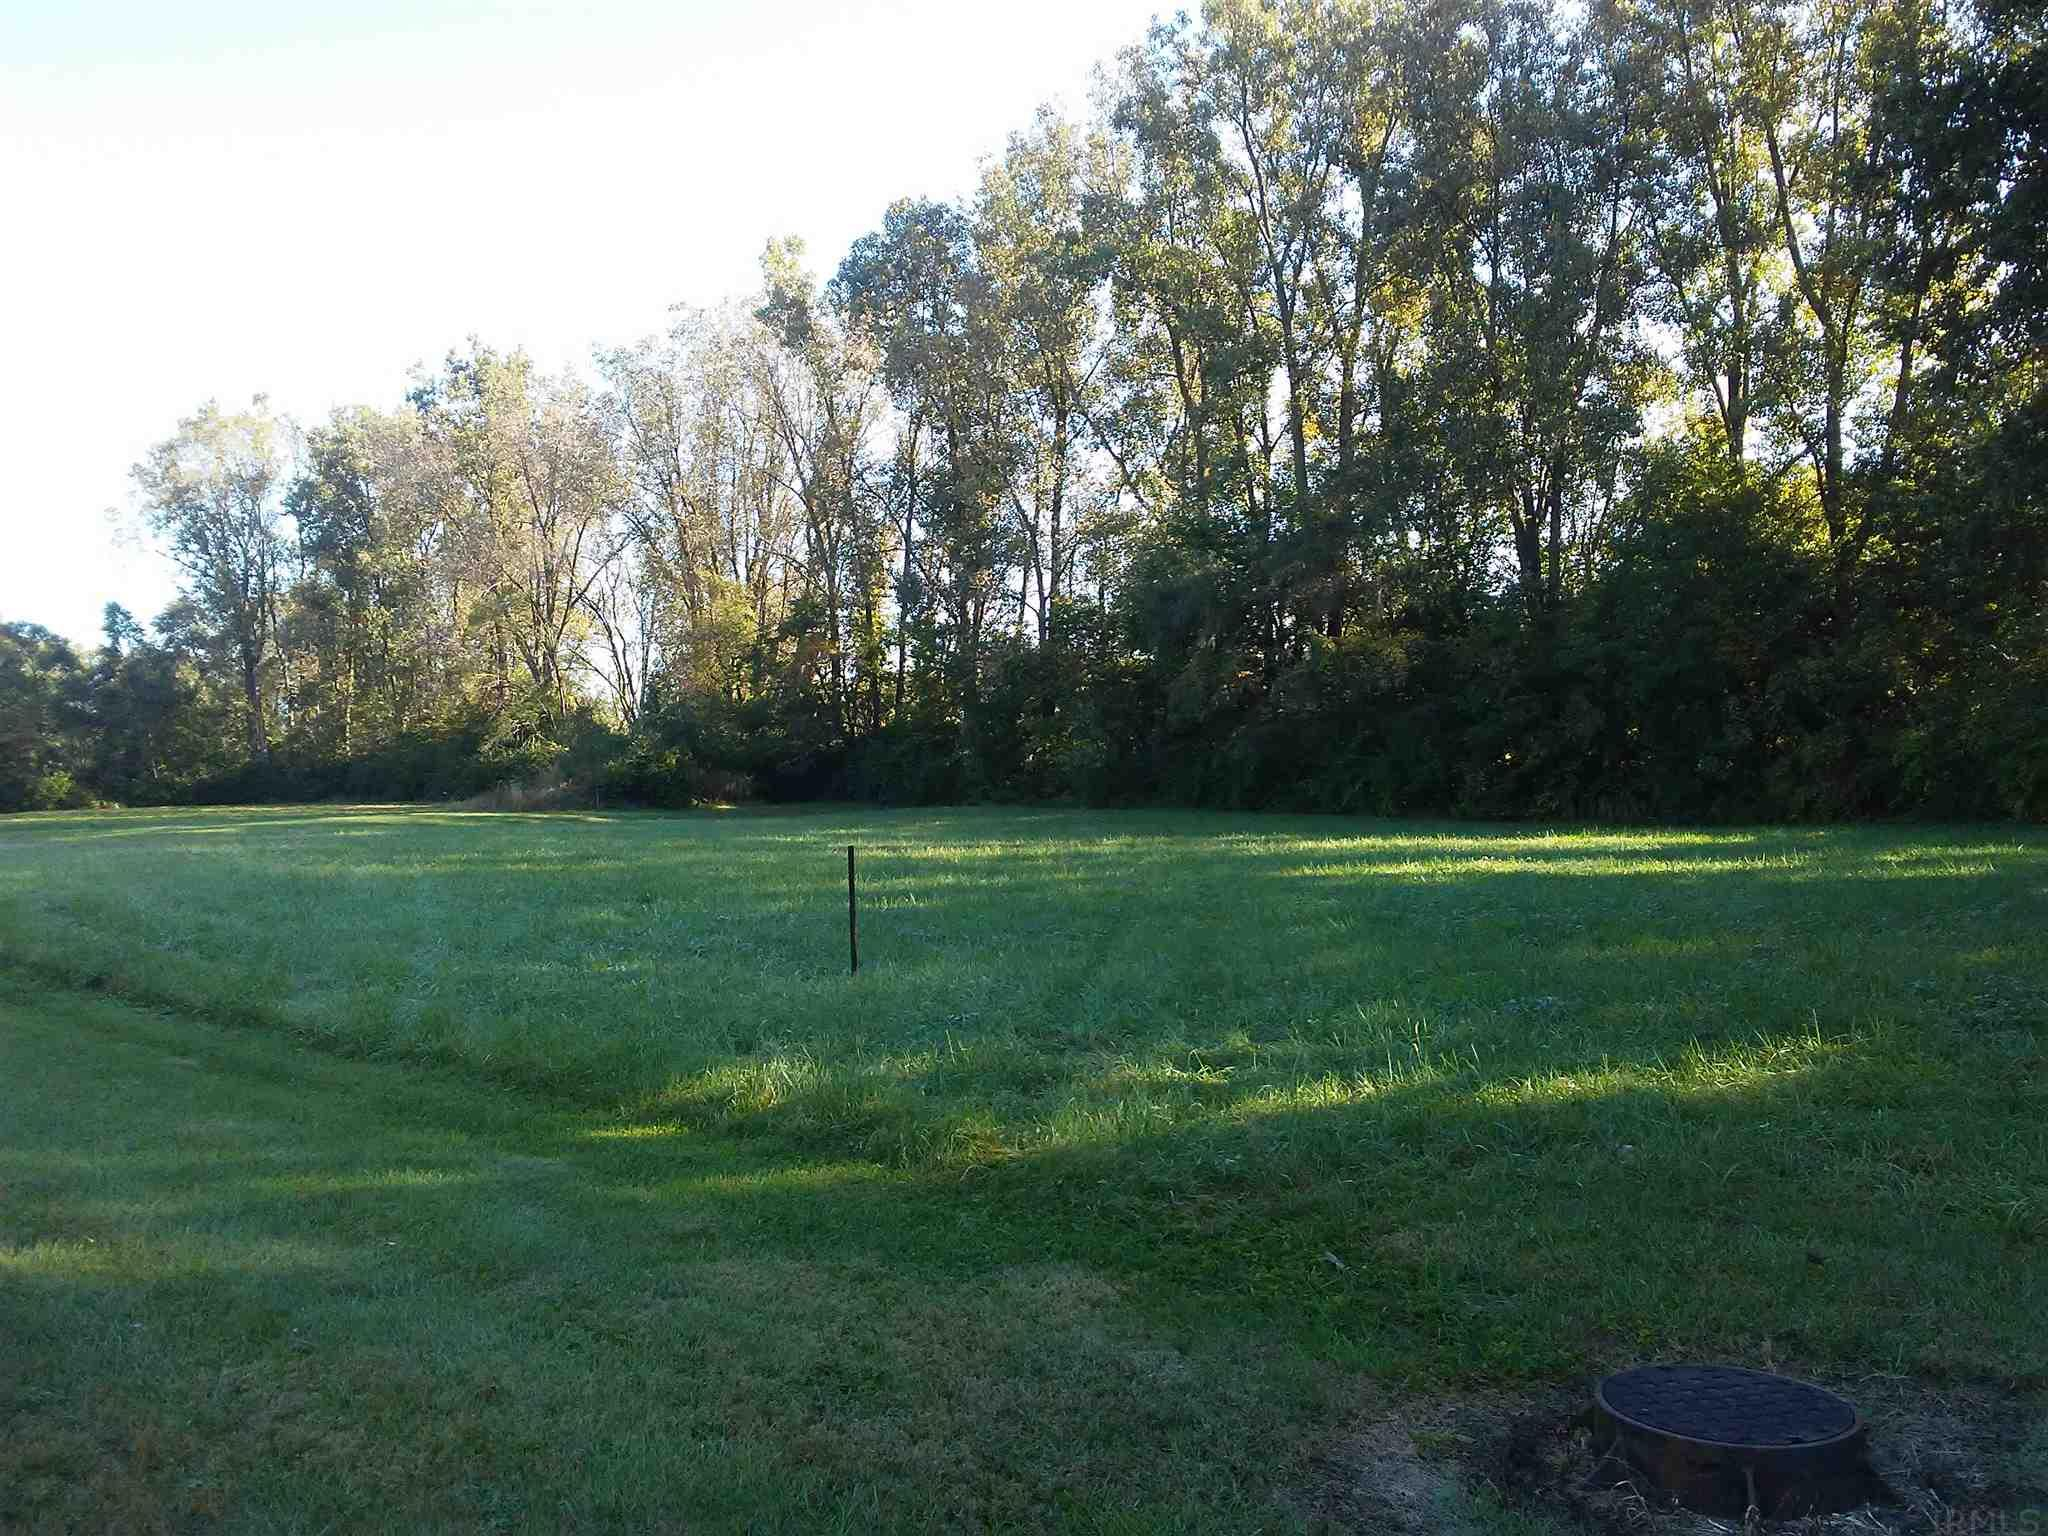 It will be easy to forget you are in the city with this one acre of land.  It is located in a quiet and peaceful neighborhood.  There are homes across the street recently built.  There is potential to separate into 2-4 lots or keep one large area to build your new home, or both.  The property backs up to a wooded area for added privacy.  All city utilities available.